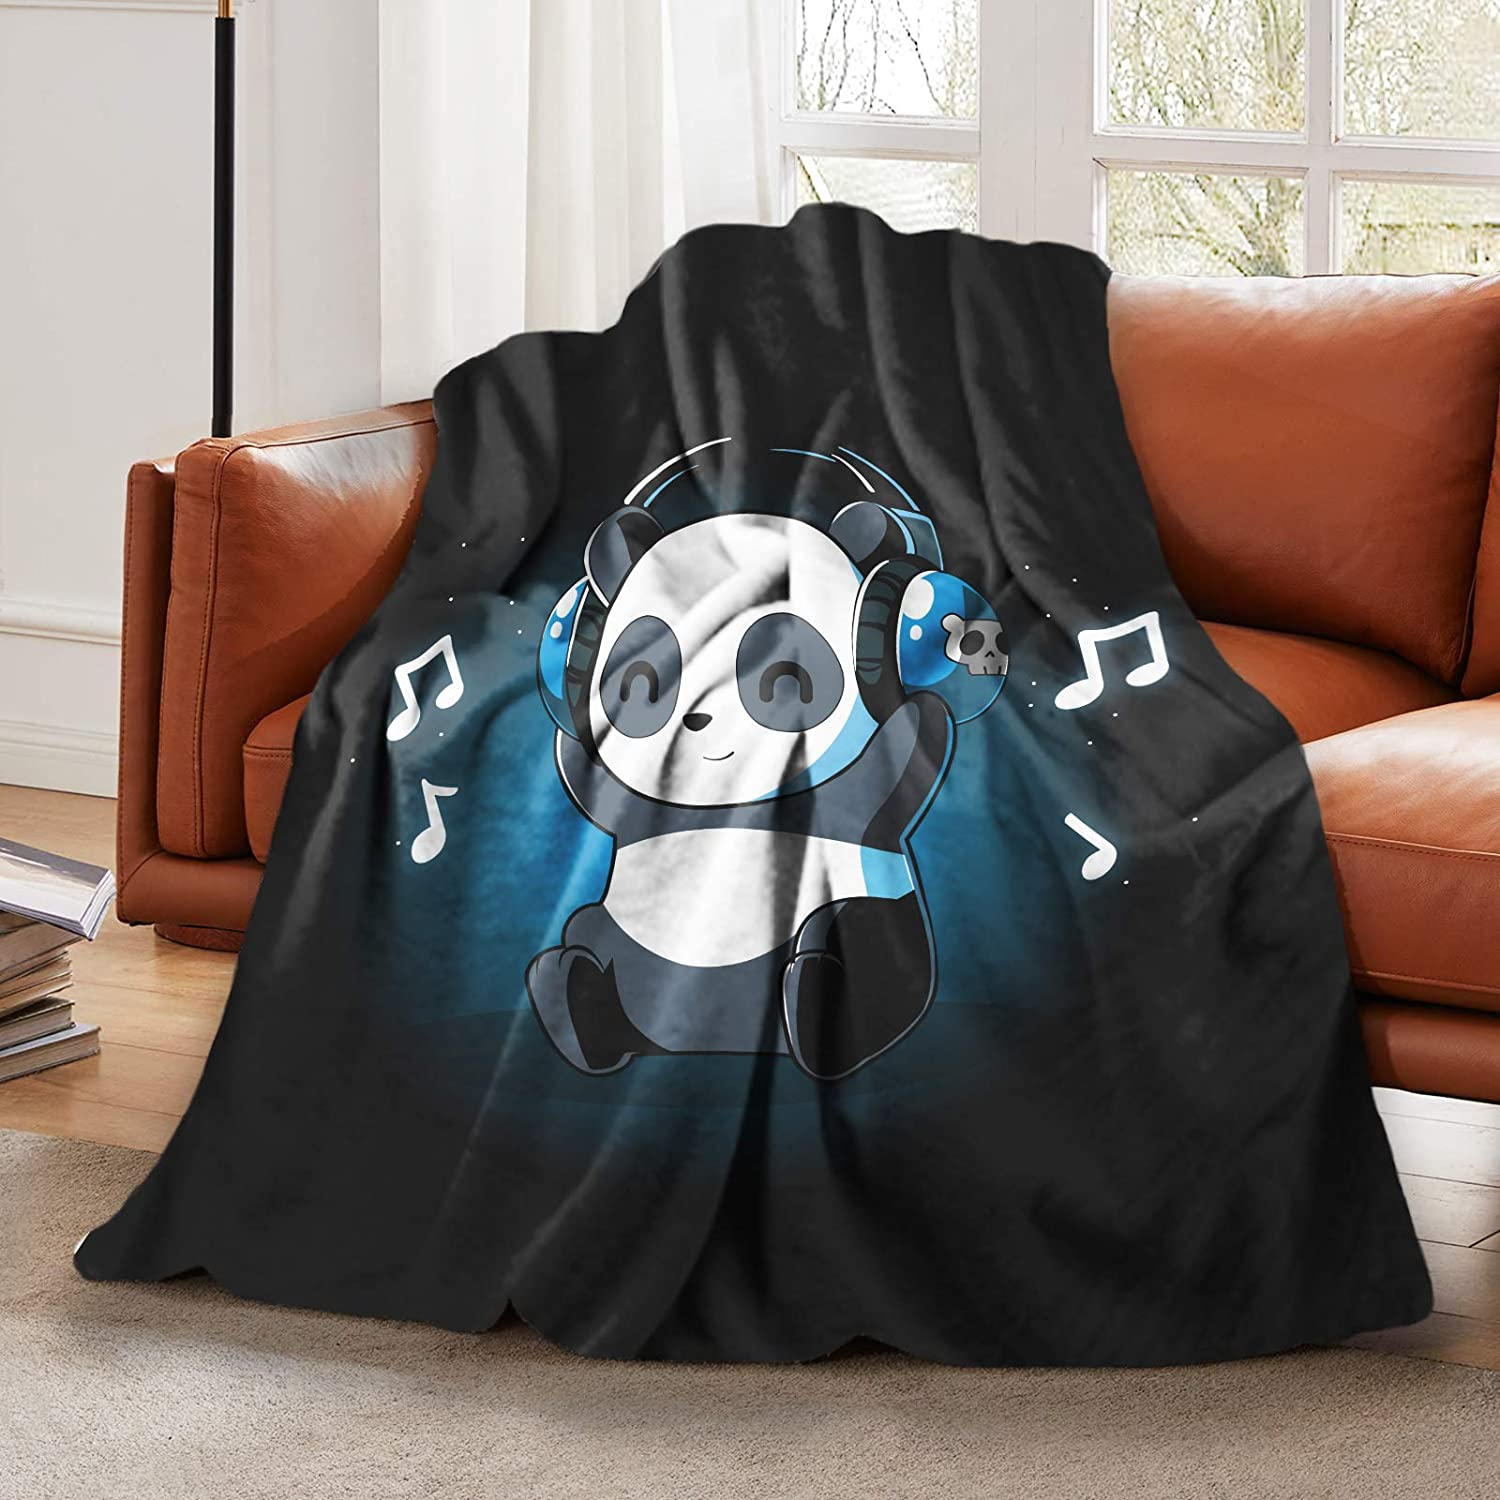 "Plush Fluffy Throw Blanket Cartoon Cute Baby Panda With Headphones Music Bed Blanket for Boys Girls Teens Smooth Soft Flannel Blanket for Sofa Chair Office Travel Camping Outdoor Home Decor 50""x60"""